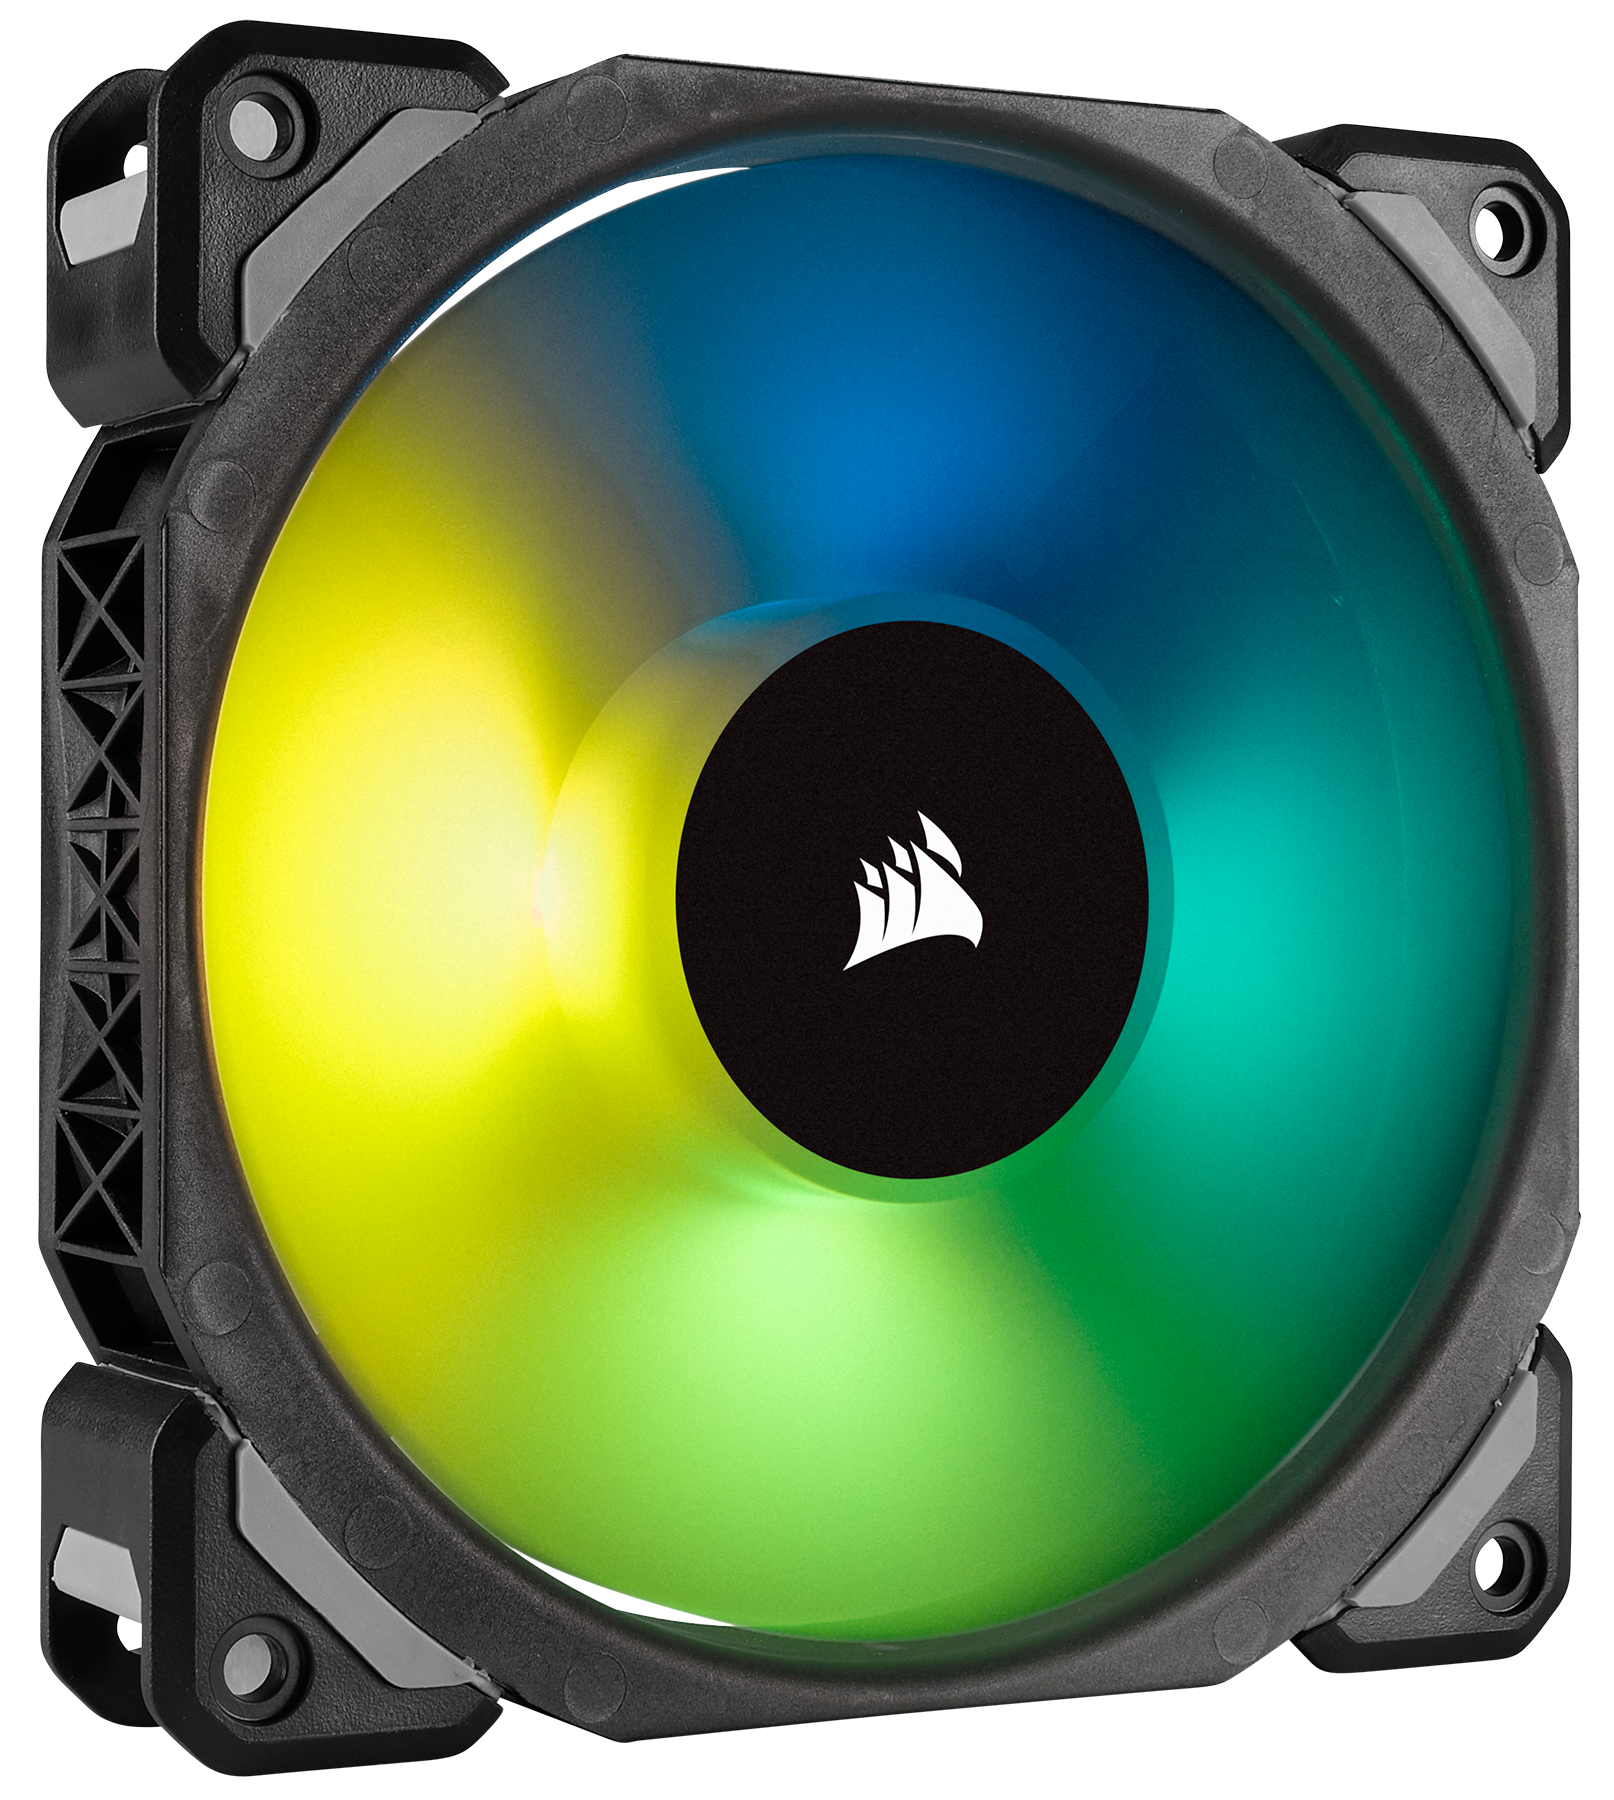 Ml120 Pro Rgb Led 120mm Pwm Premium Magnetic Levitation Fan 3 The Tricolor Leds Can Be Mounted In Three Ways Through Corsair Combines Unrivaled Performance And Low Noise Operation By Utilizing Bearing Technology With Vibrant